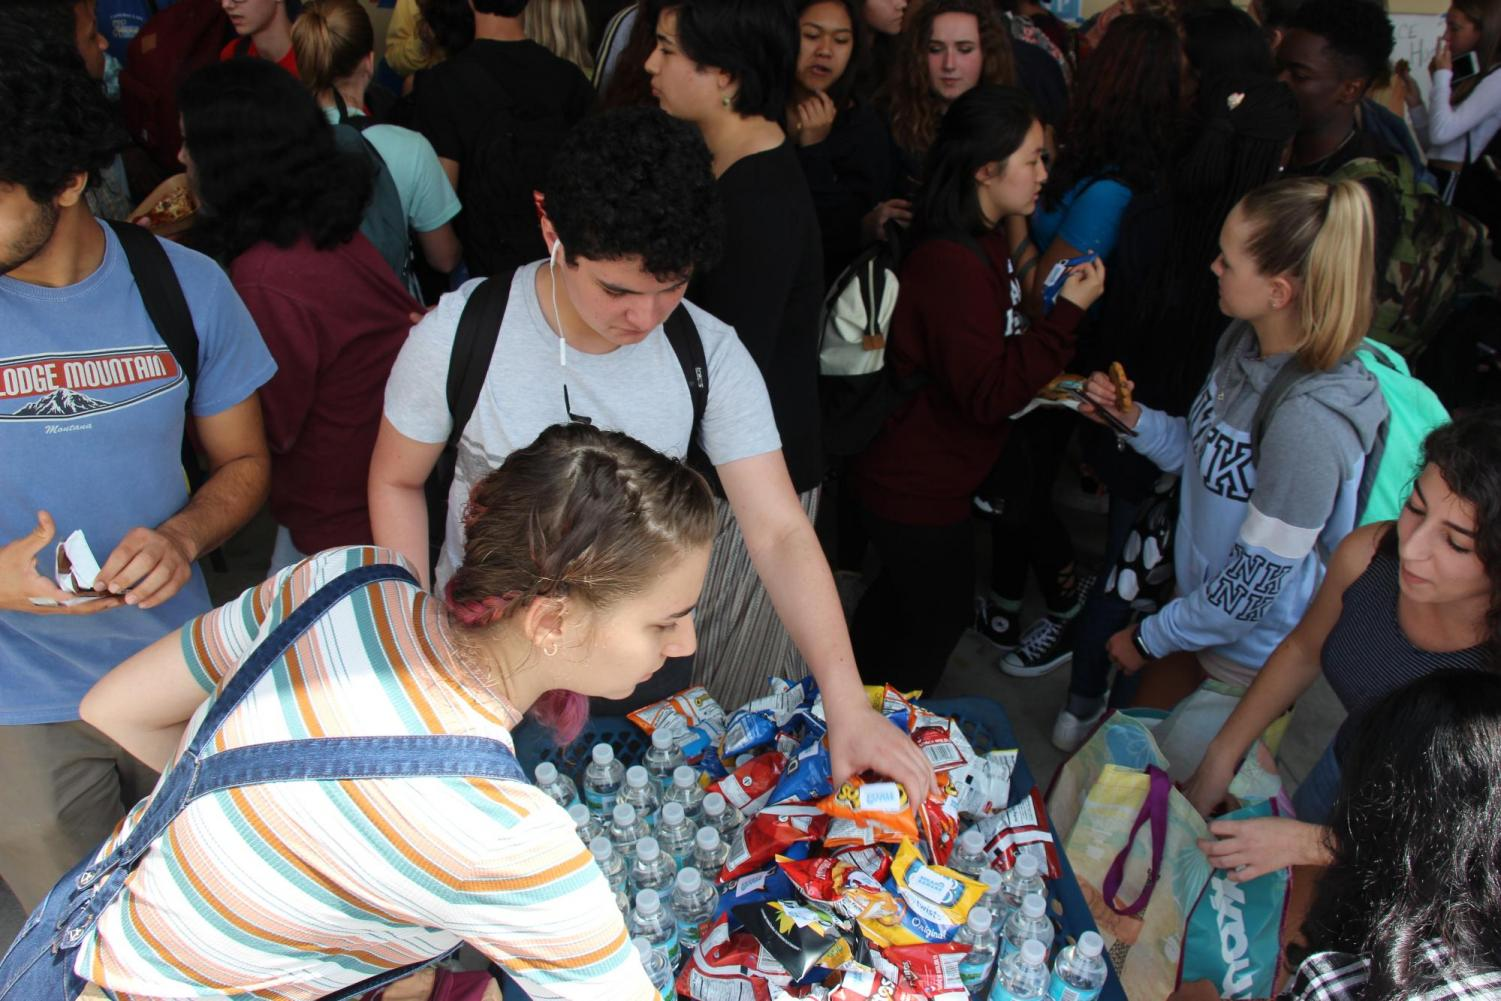 Students receive edible handouts from SGA and Class Council around the cafeteria during lunch. Throughout the week, candidates passed out a multitude of treats in order to entice voters.